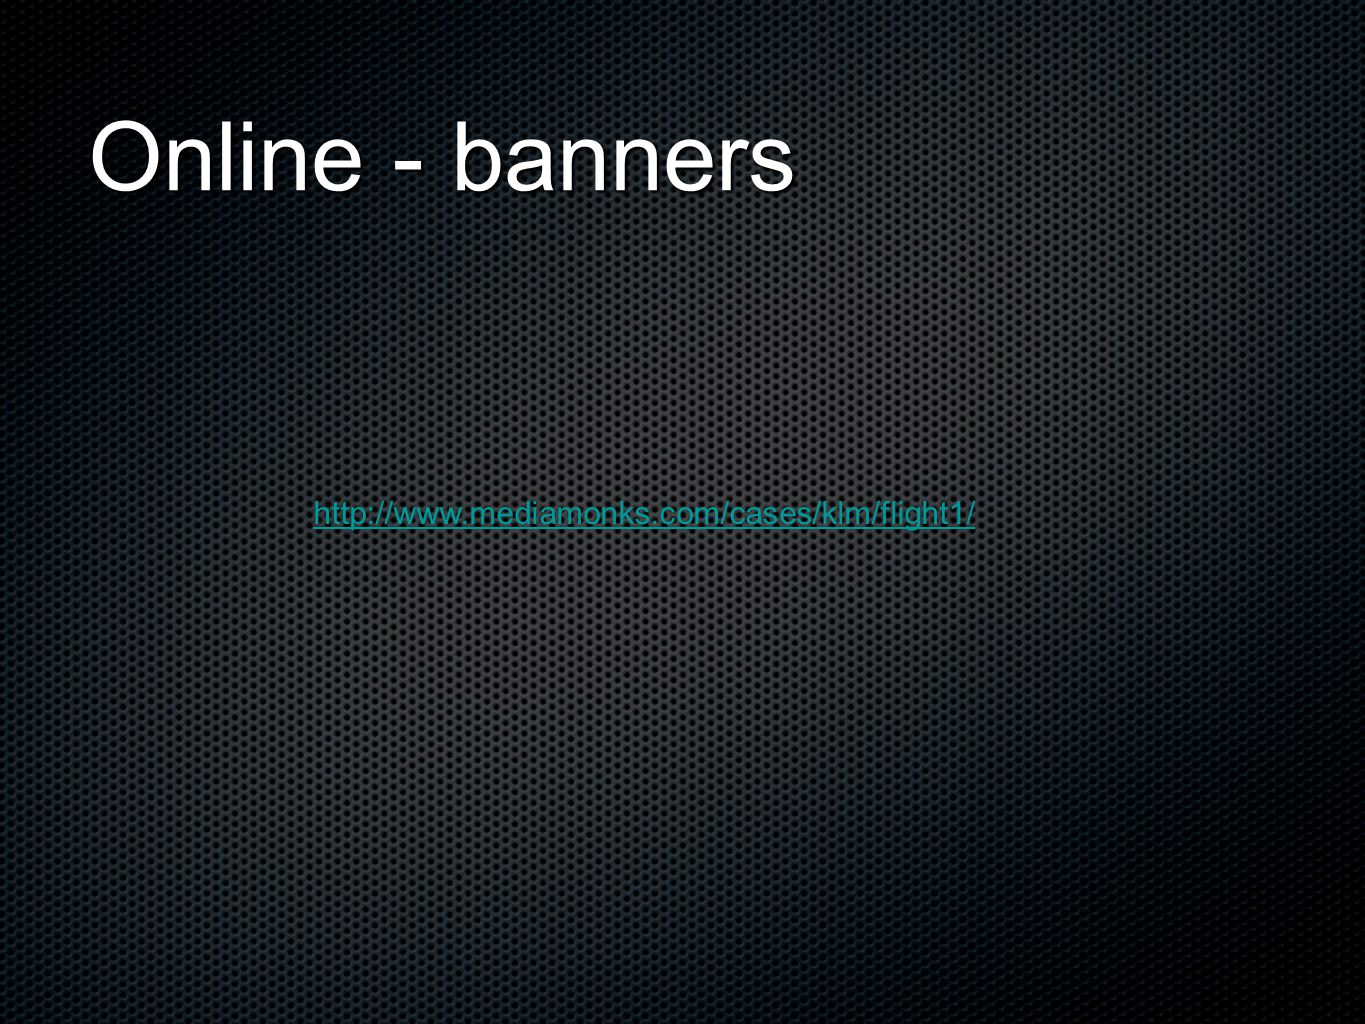 Online - banners http://www.mediamonks.com/cases/klm/flight1/